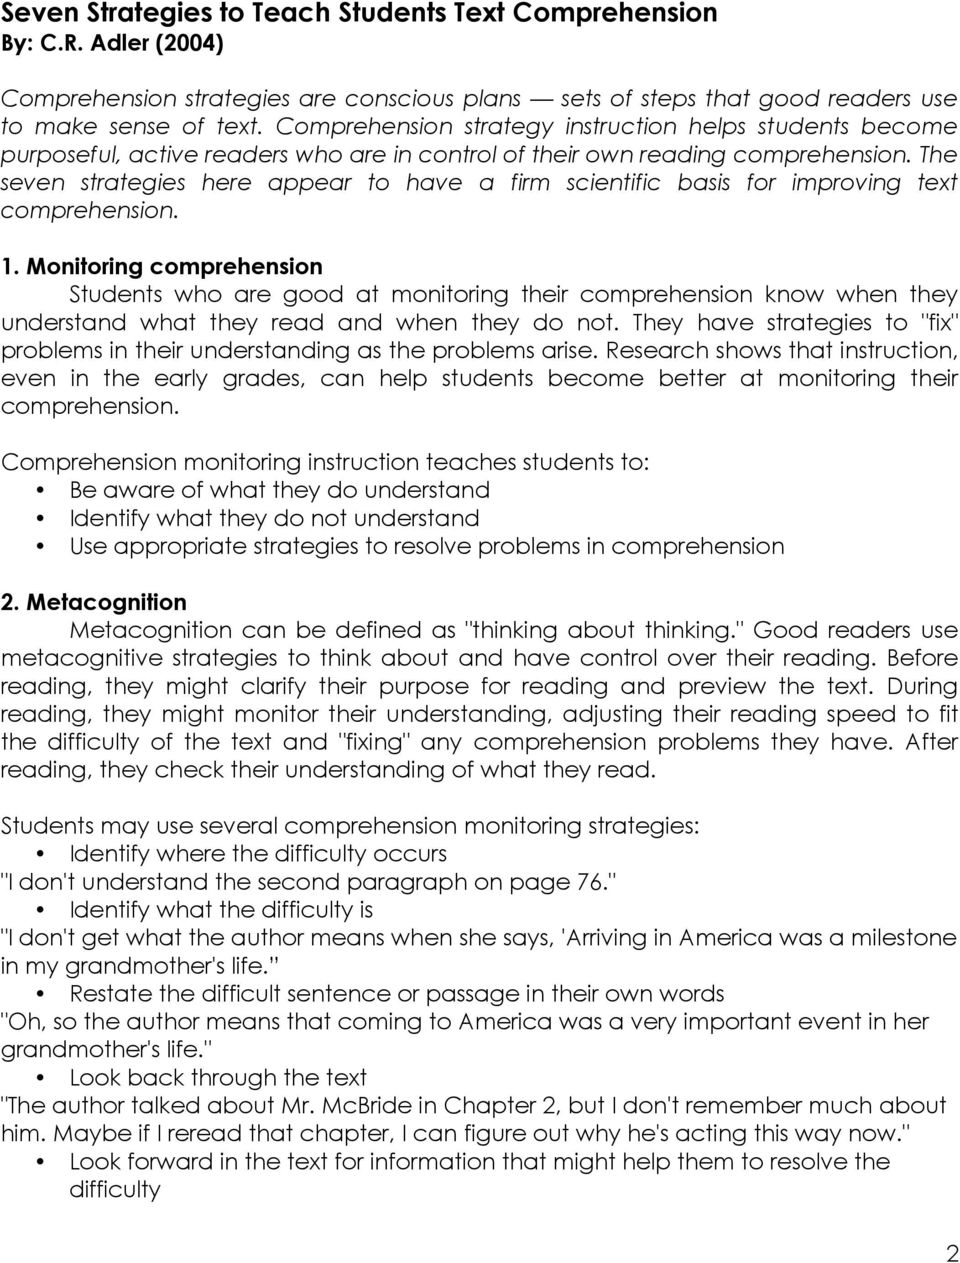 Reading Comprehension & the GED Test - PDF